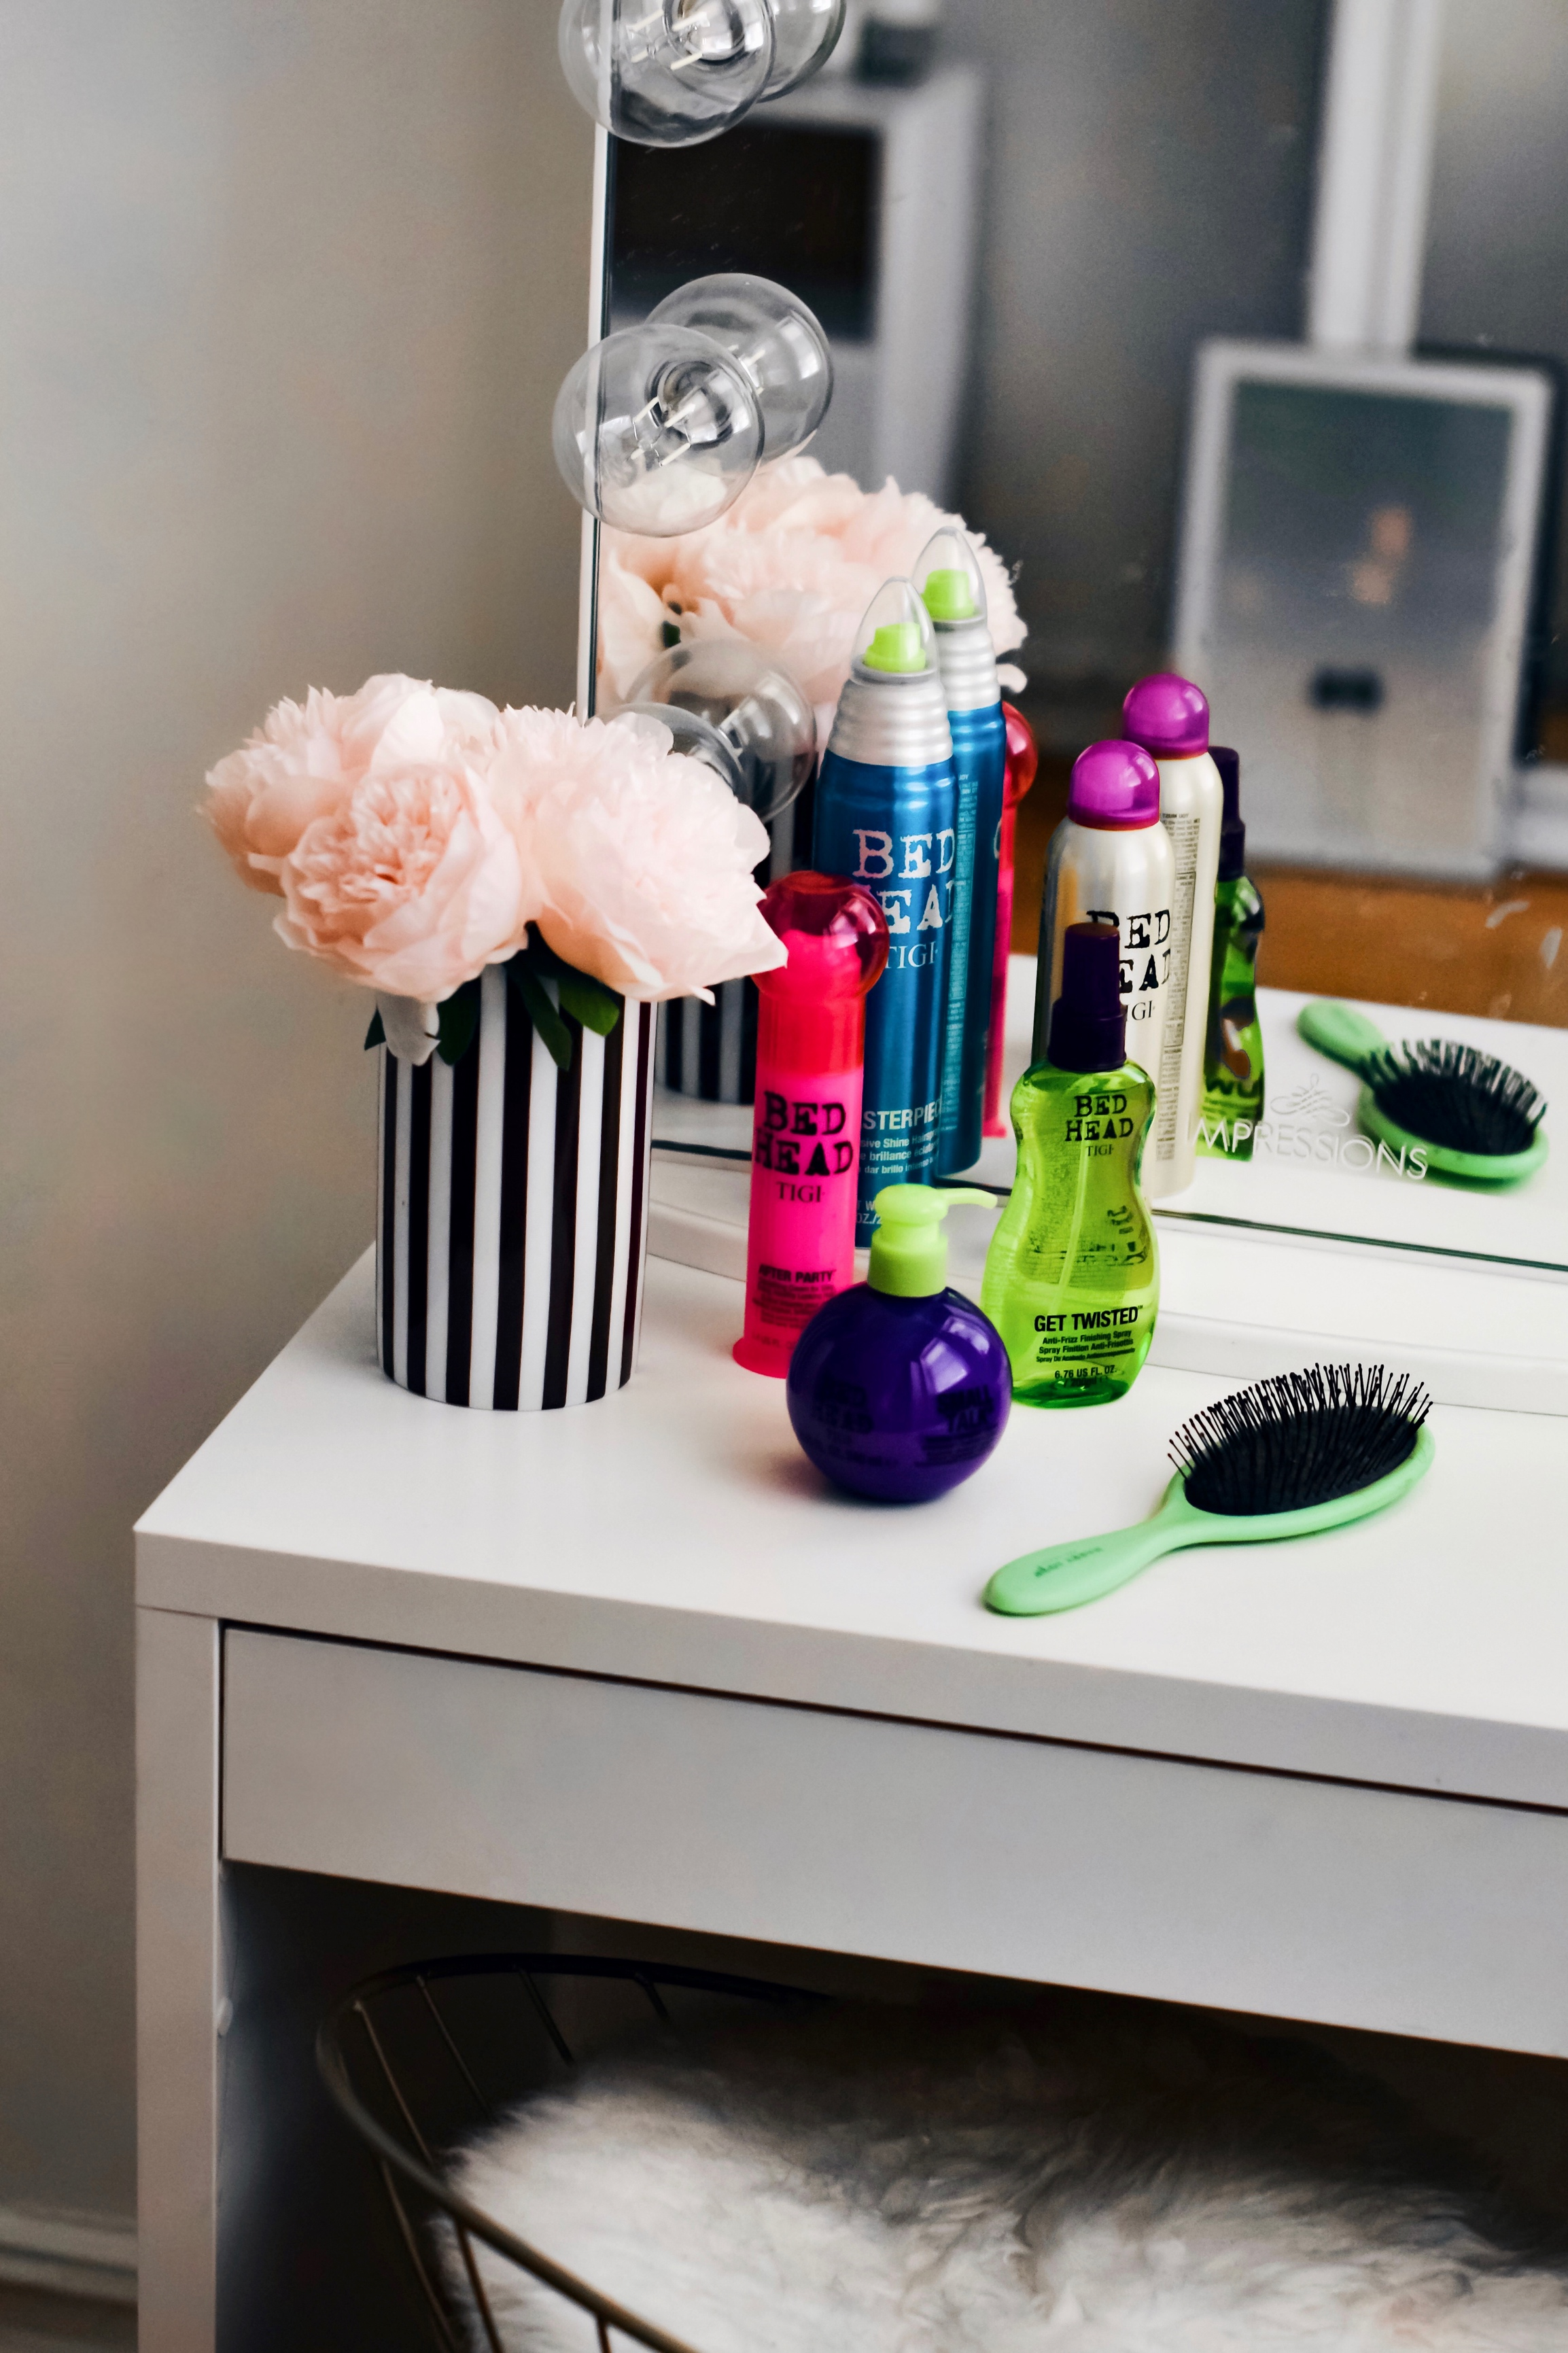 The Best Of Bed Head By TIGI Hair Products Esther Santer Fashion Blog NYC Street Style Blogger Outfit Trendy Silk Eye Mask Pink Pajamas Ponytail Braid Review Ulta Shopping Flowers Vanity Brush Girl Smoothing Cream Women Pigtails Anti Frizz Shine Spray.jpg